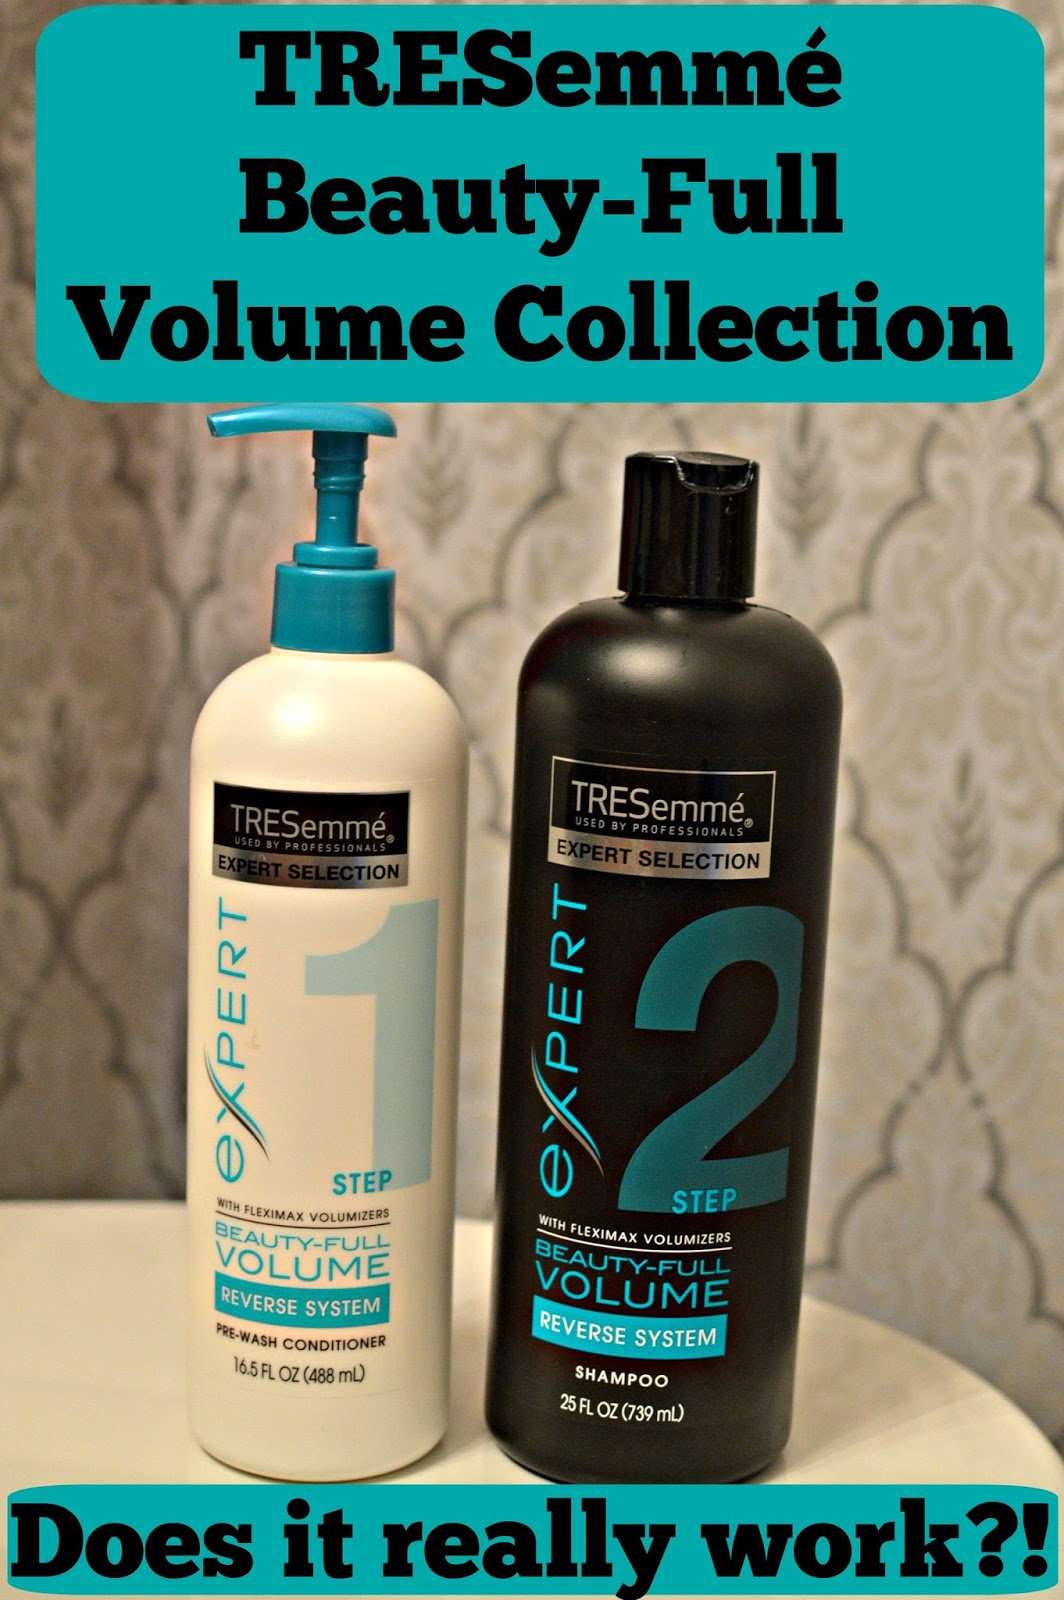 TRESemmé Beauty-Full Volume Line Review: Does the TRESemmé Beauty-Full Volume Line actually work?